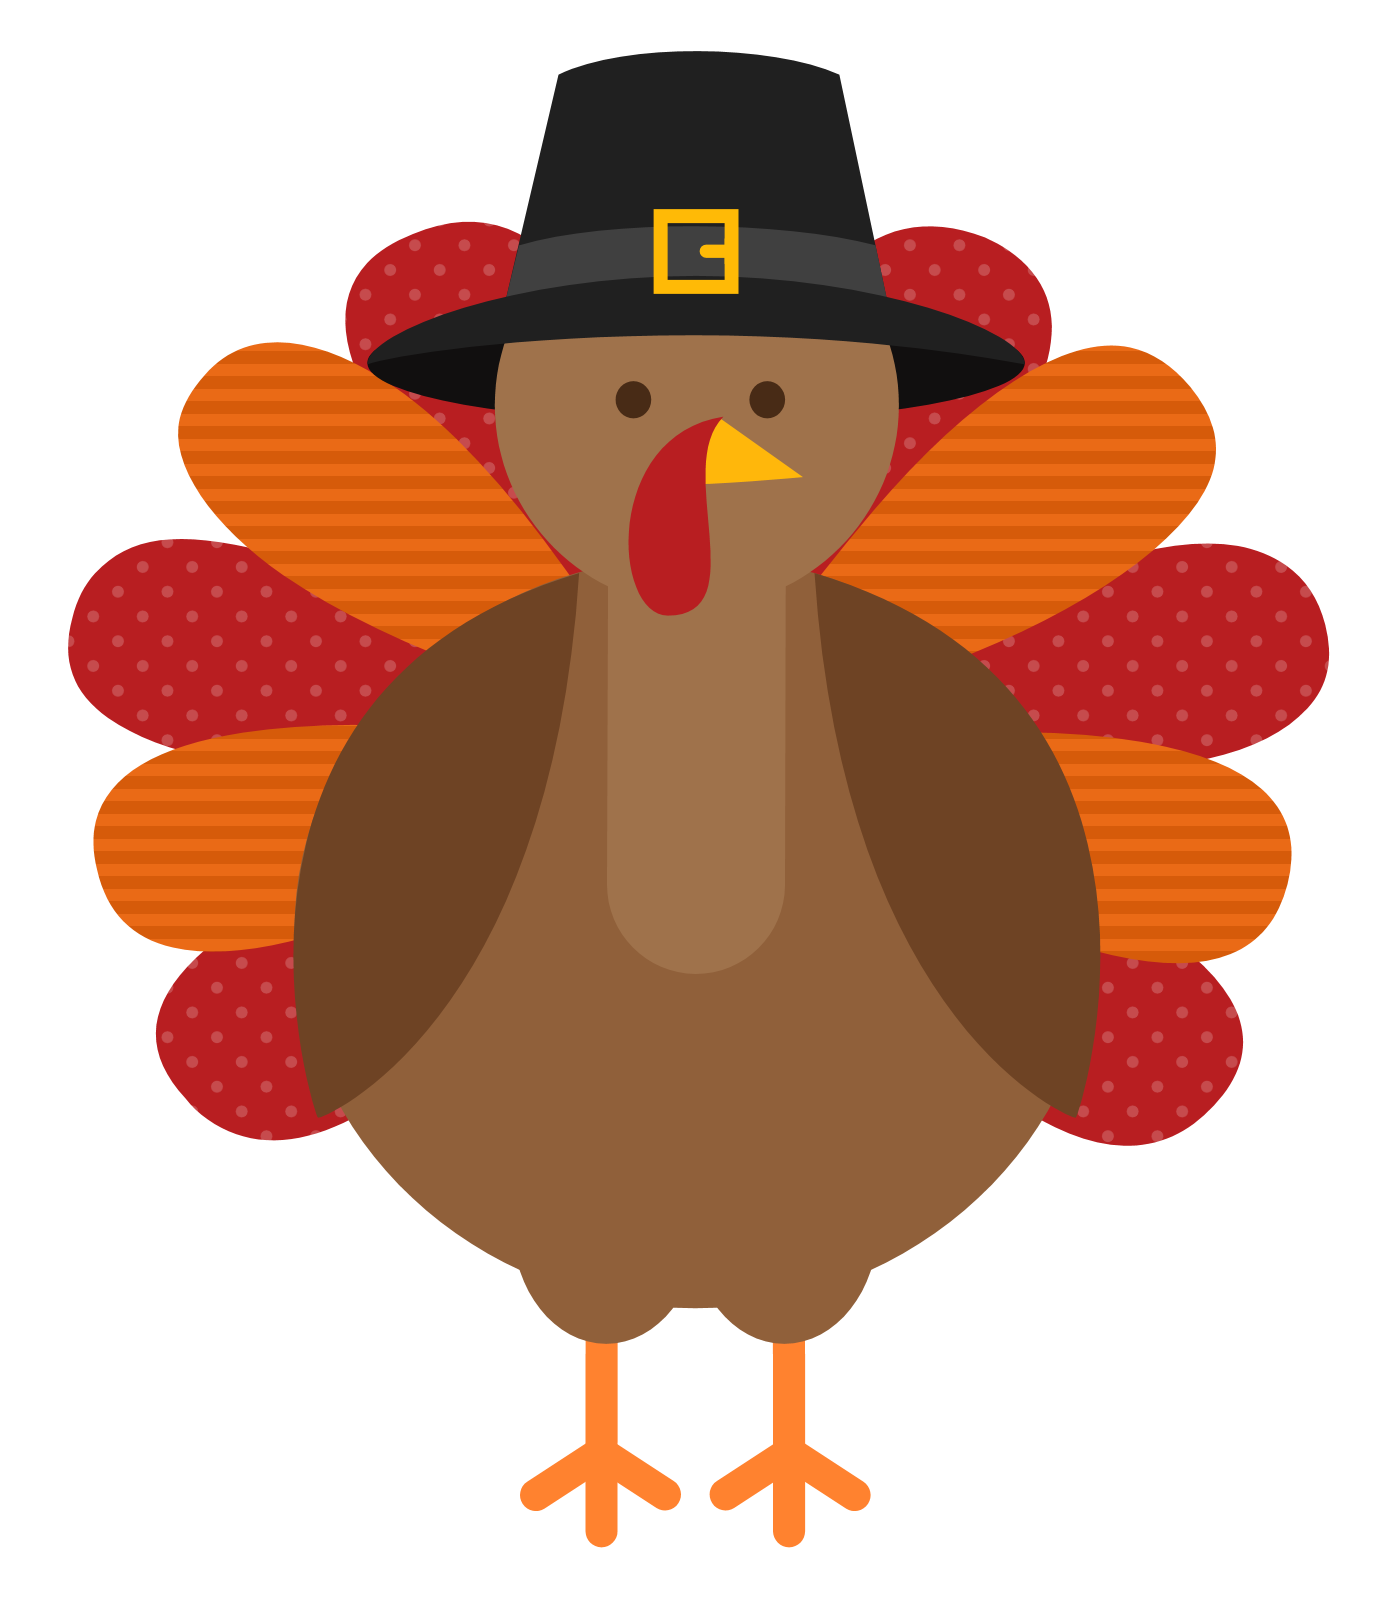 Turkey PNG HD - Turkey Bird PNG